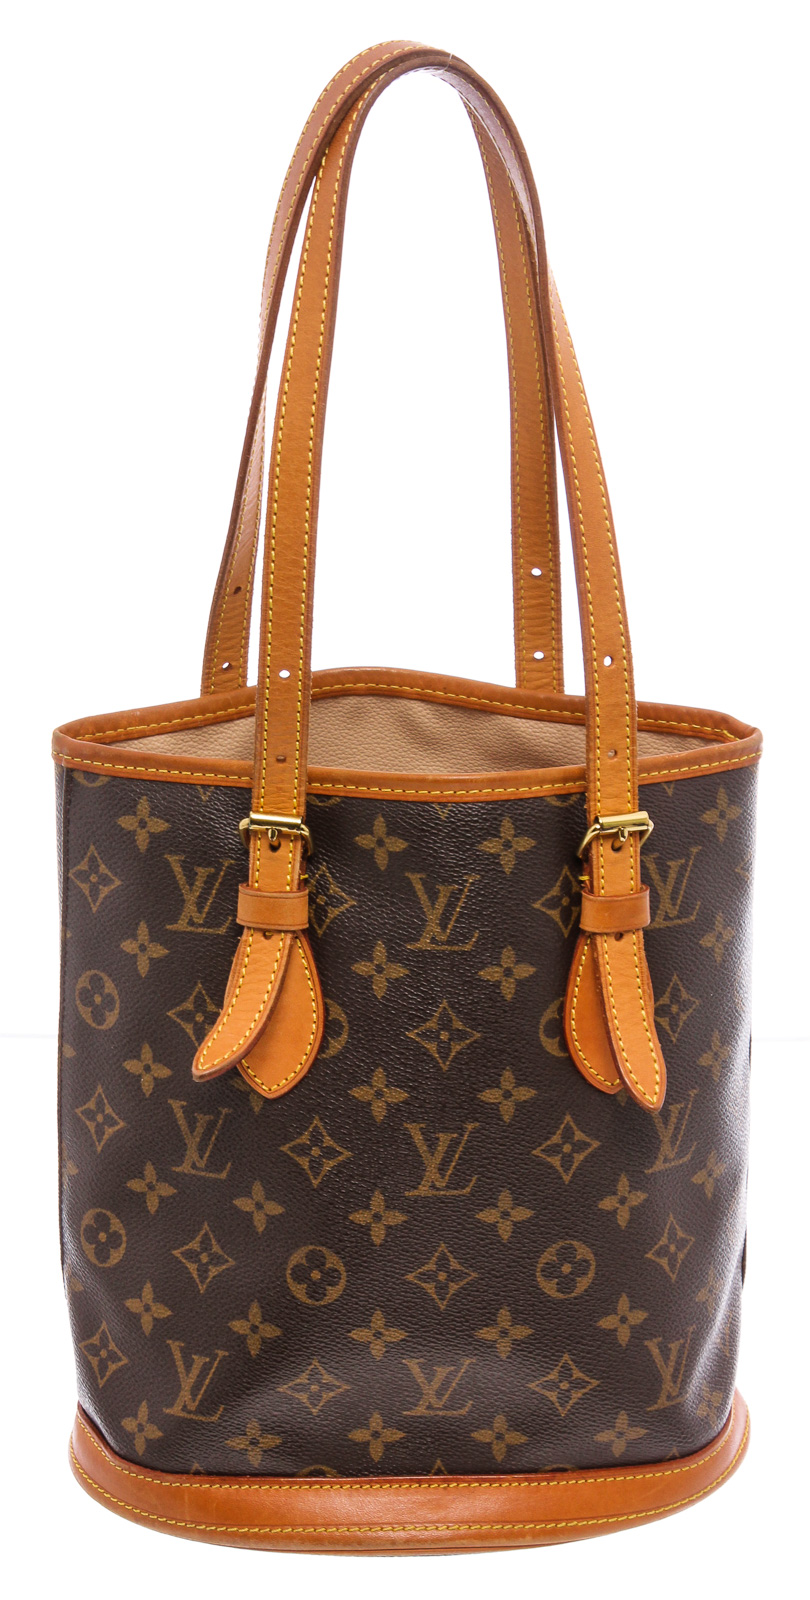 Louis Vuitton Monogram Petit Bucket Marque Luxury.jpg